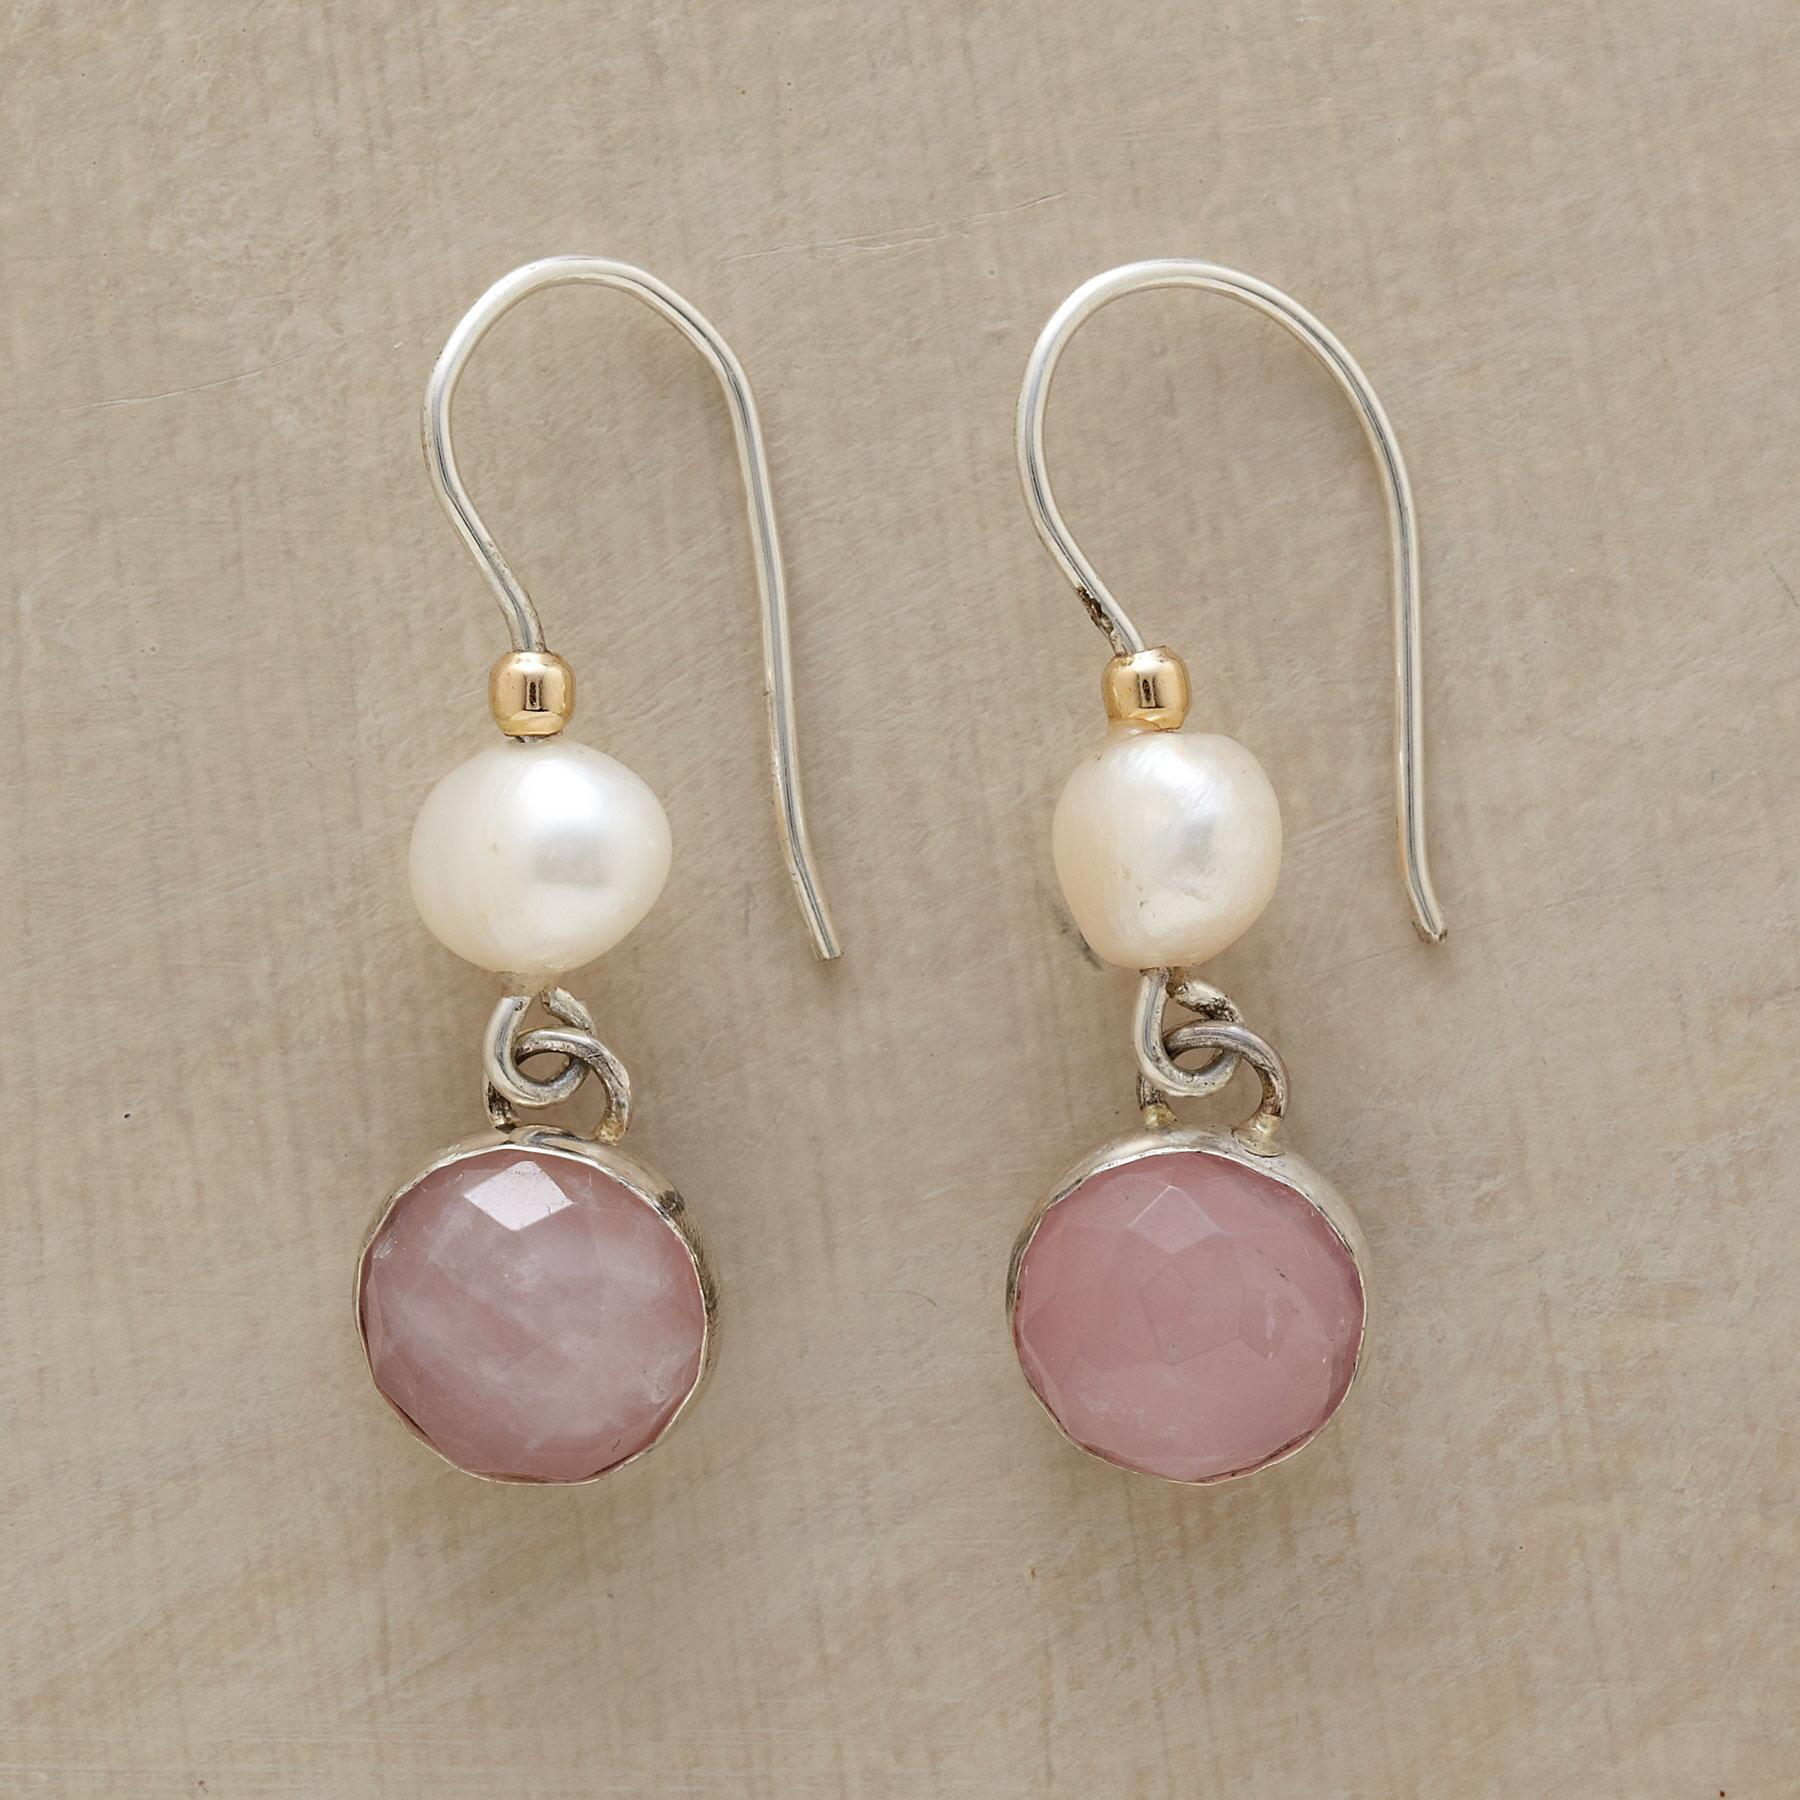 BLUSHING PINK AND PEARL EARRINGS : View 1